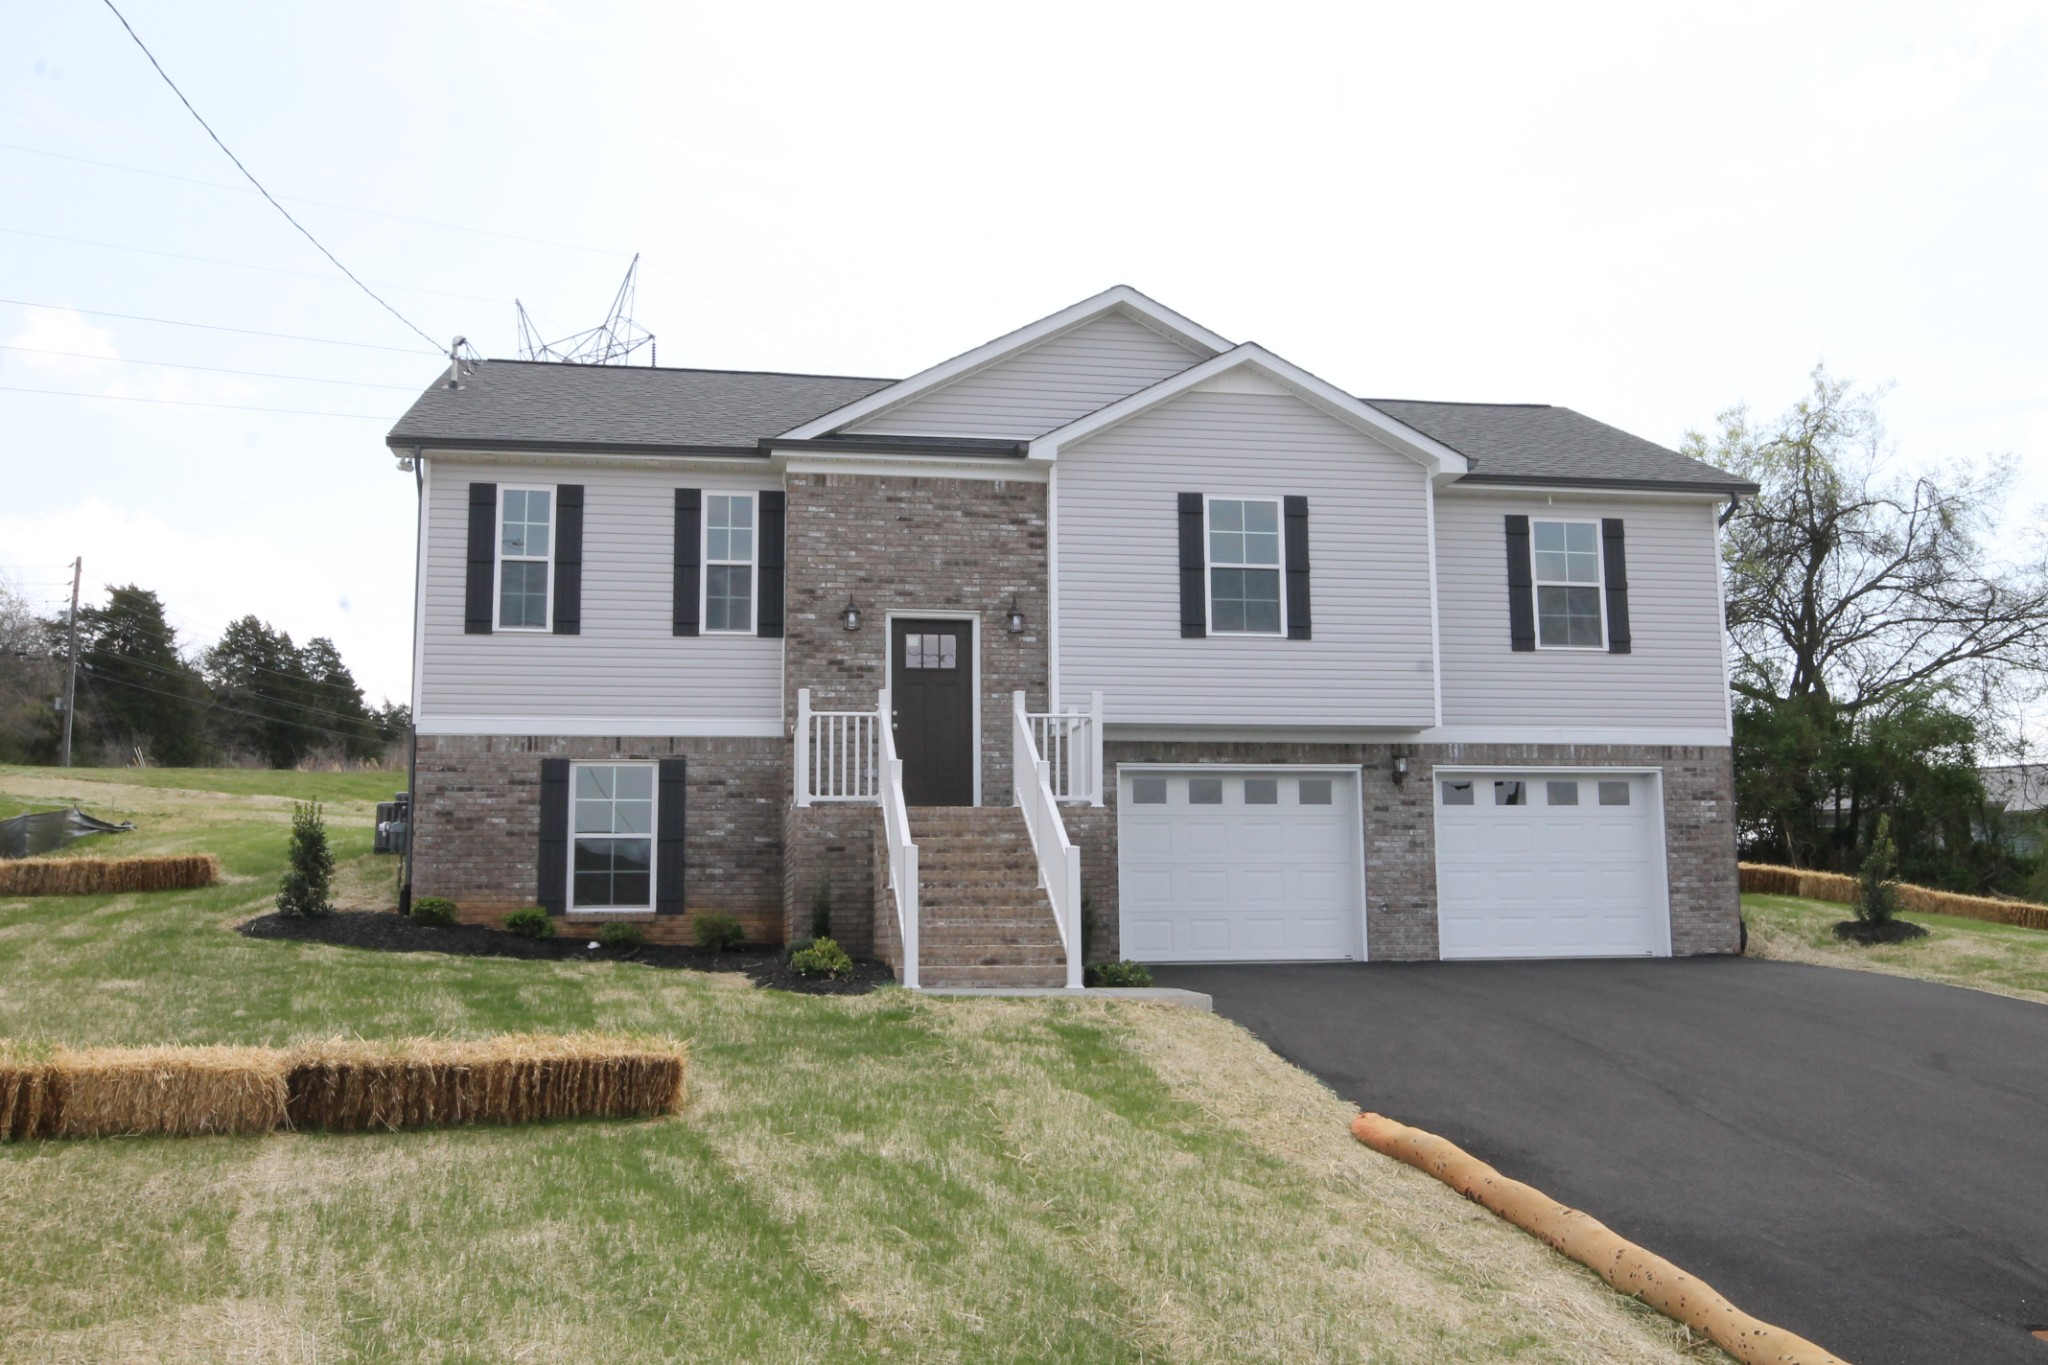 Brand New Home! 4 bedrooms plus a playroom! Your family will delight when they see this new home on a large lot near Woodard Elementary and Columbia State. Split bedroom floorplan for everyone's privacy, main level family room, lower level playroom, beautiful custom cabinets, tile bath floors, and luxury vinyl wood flooring in all living areas! 3 full baths and half acre lot! Large deck located off the kitchen is perfect for grilling and entertaining.